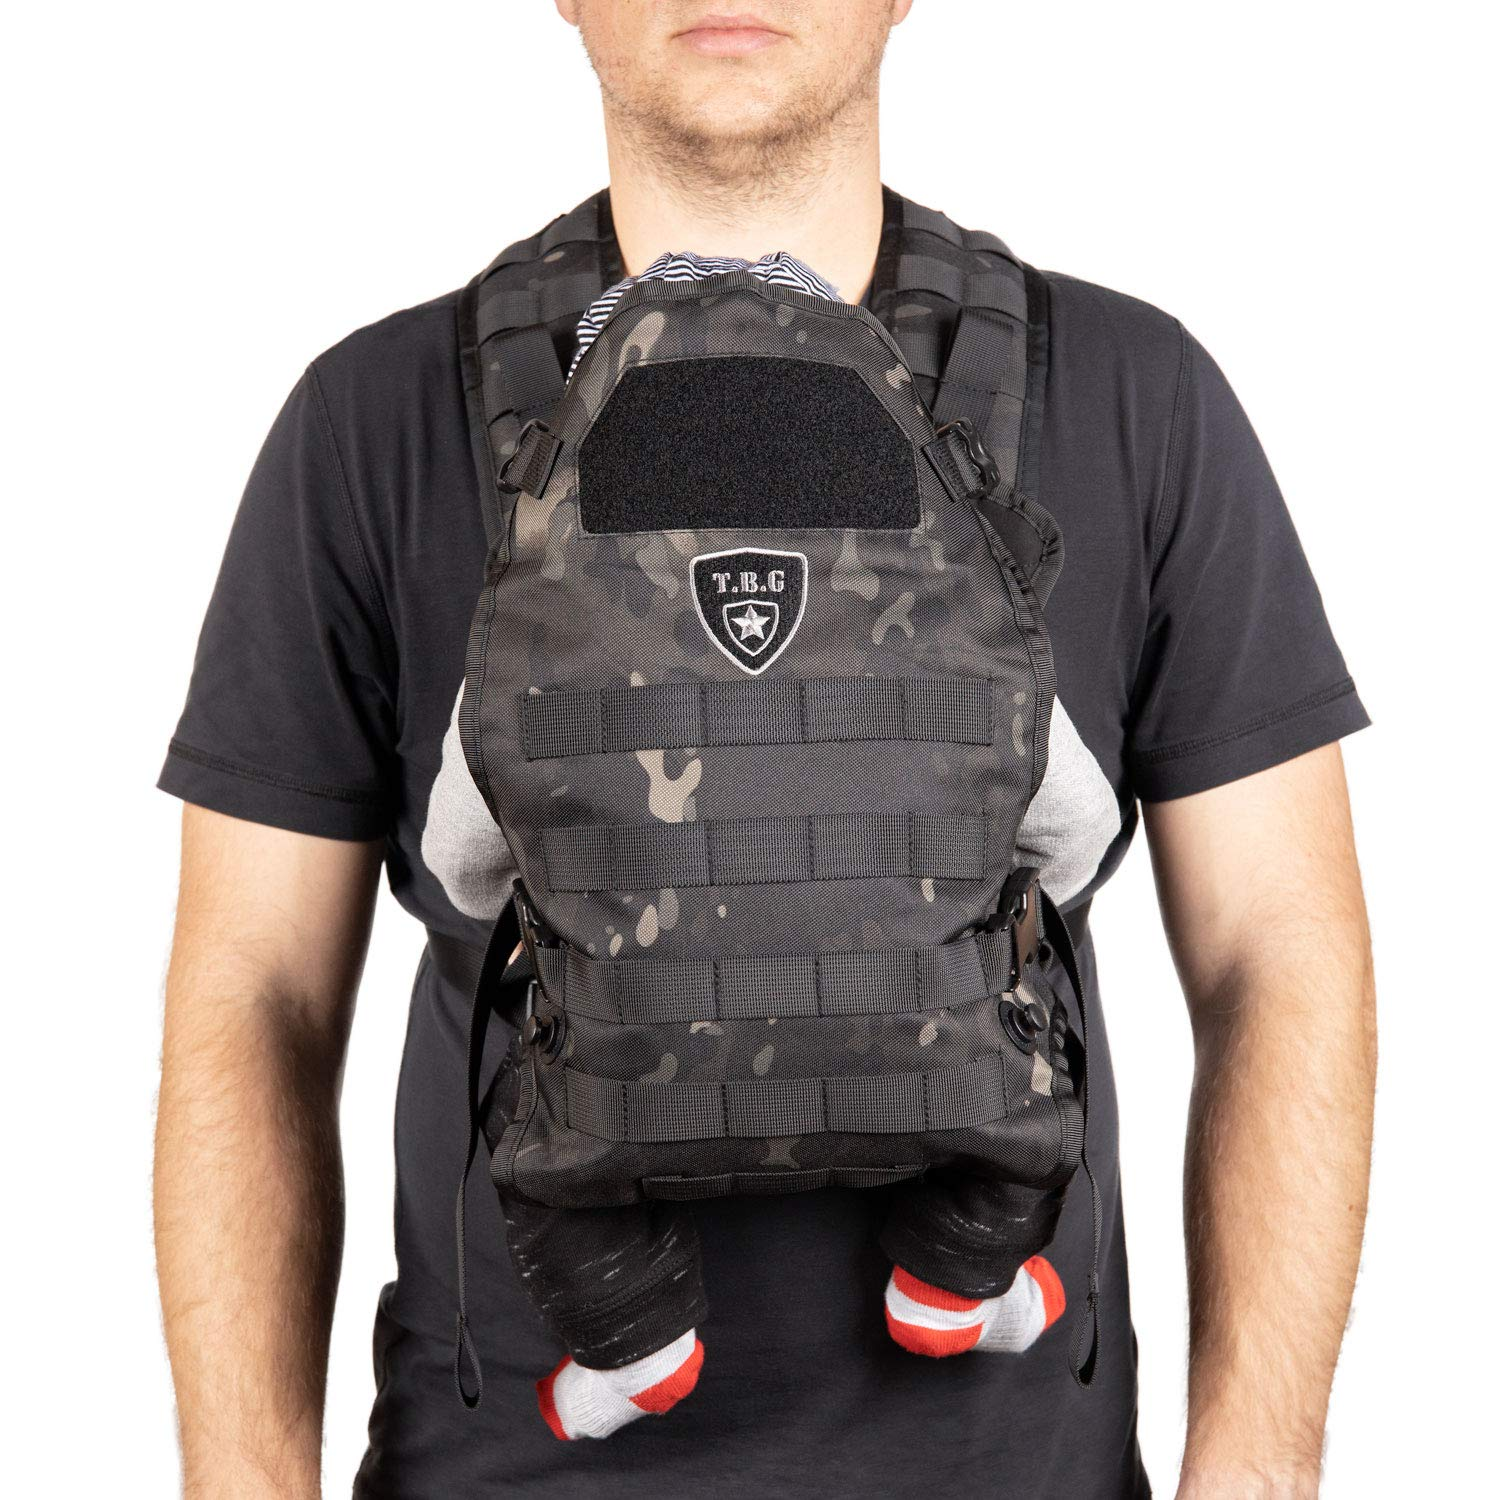 TBG Tactical Baby Carrier (Black Camo)